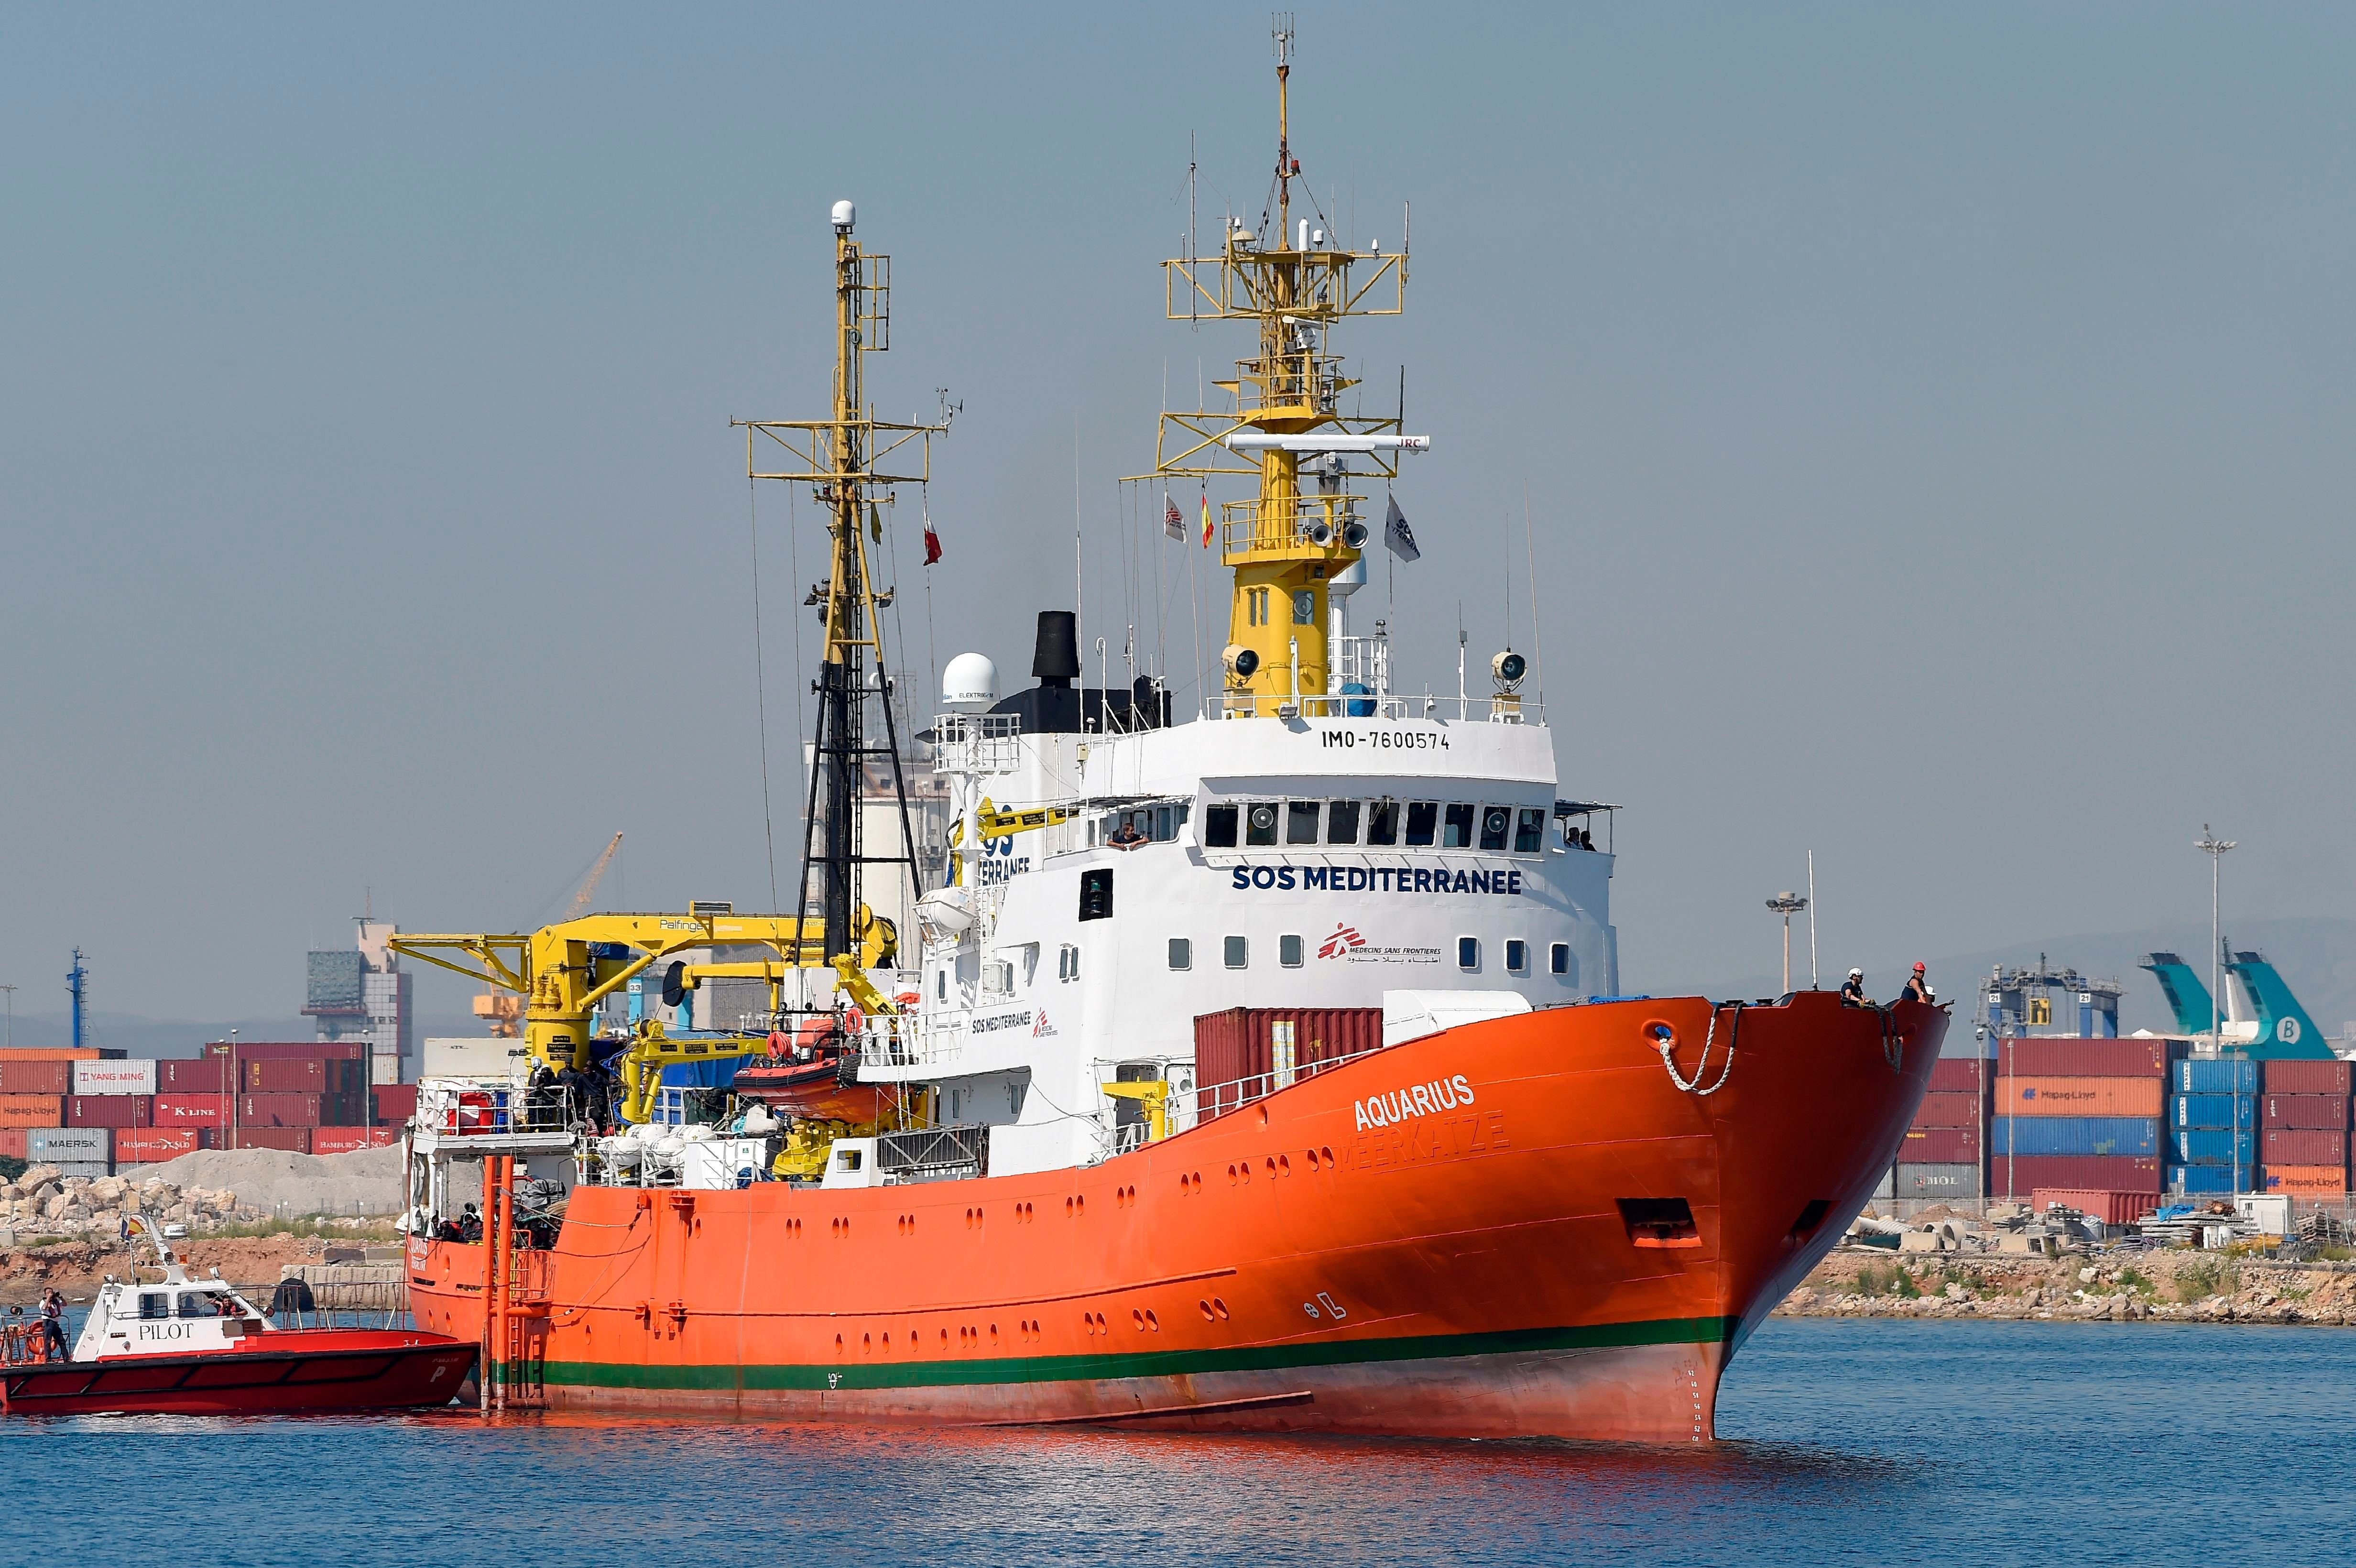 Aquarius Aid Convoy Carrying 630 Migrants Arrive In Spain After A Week At